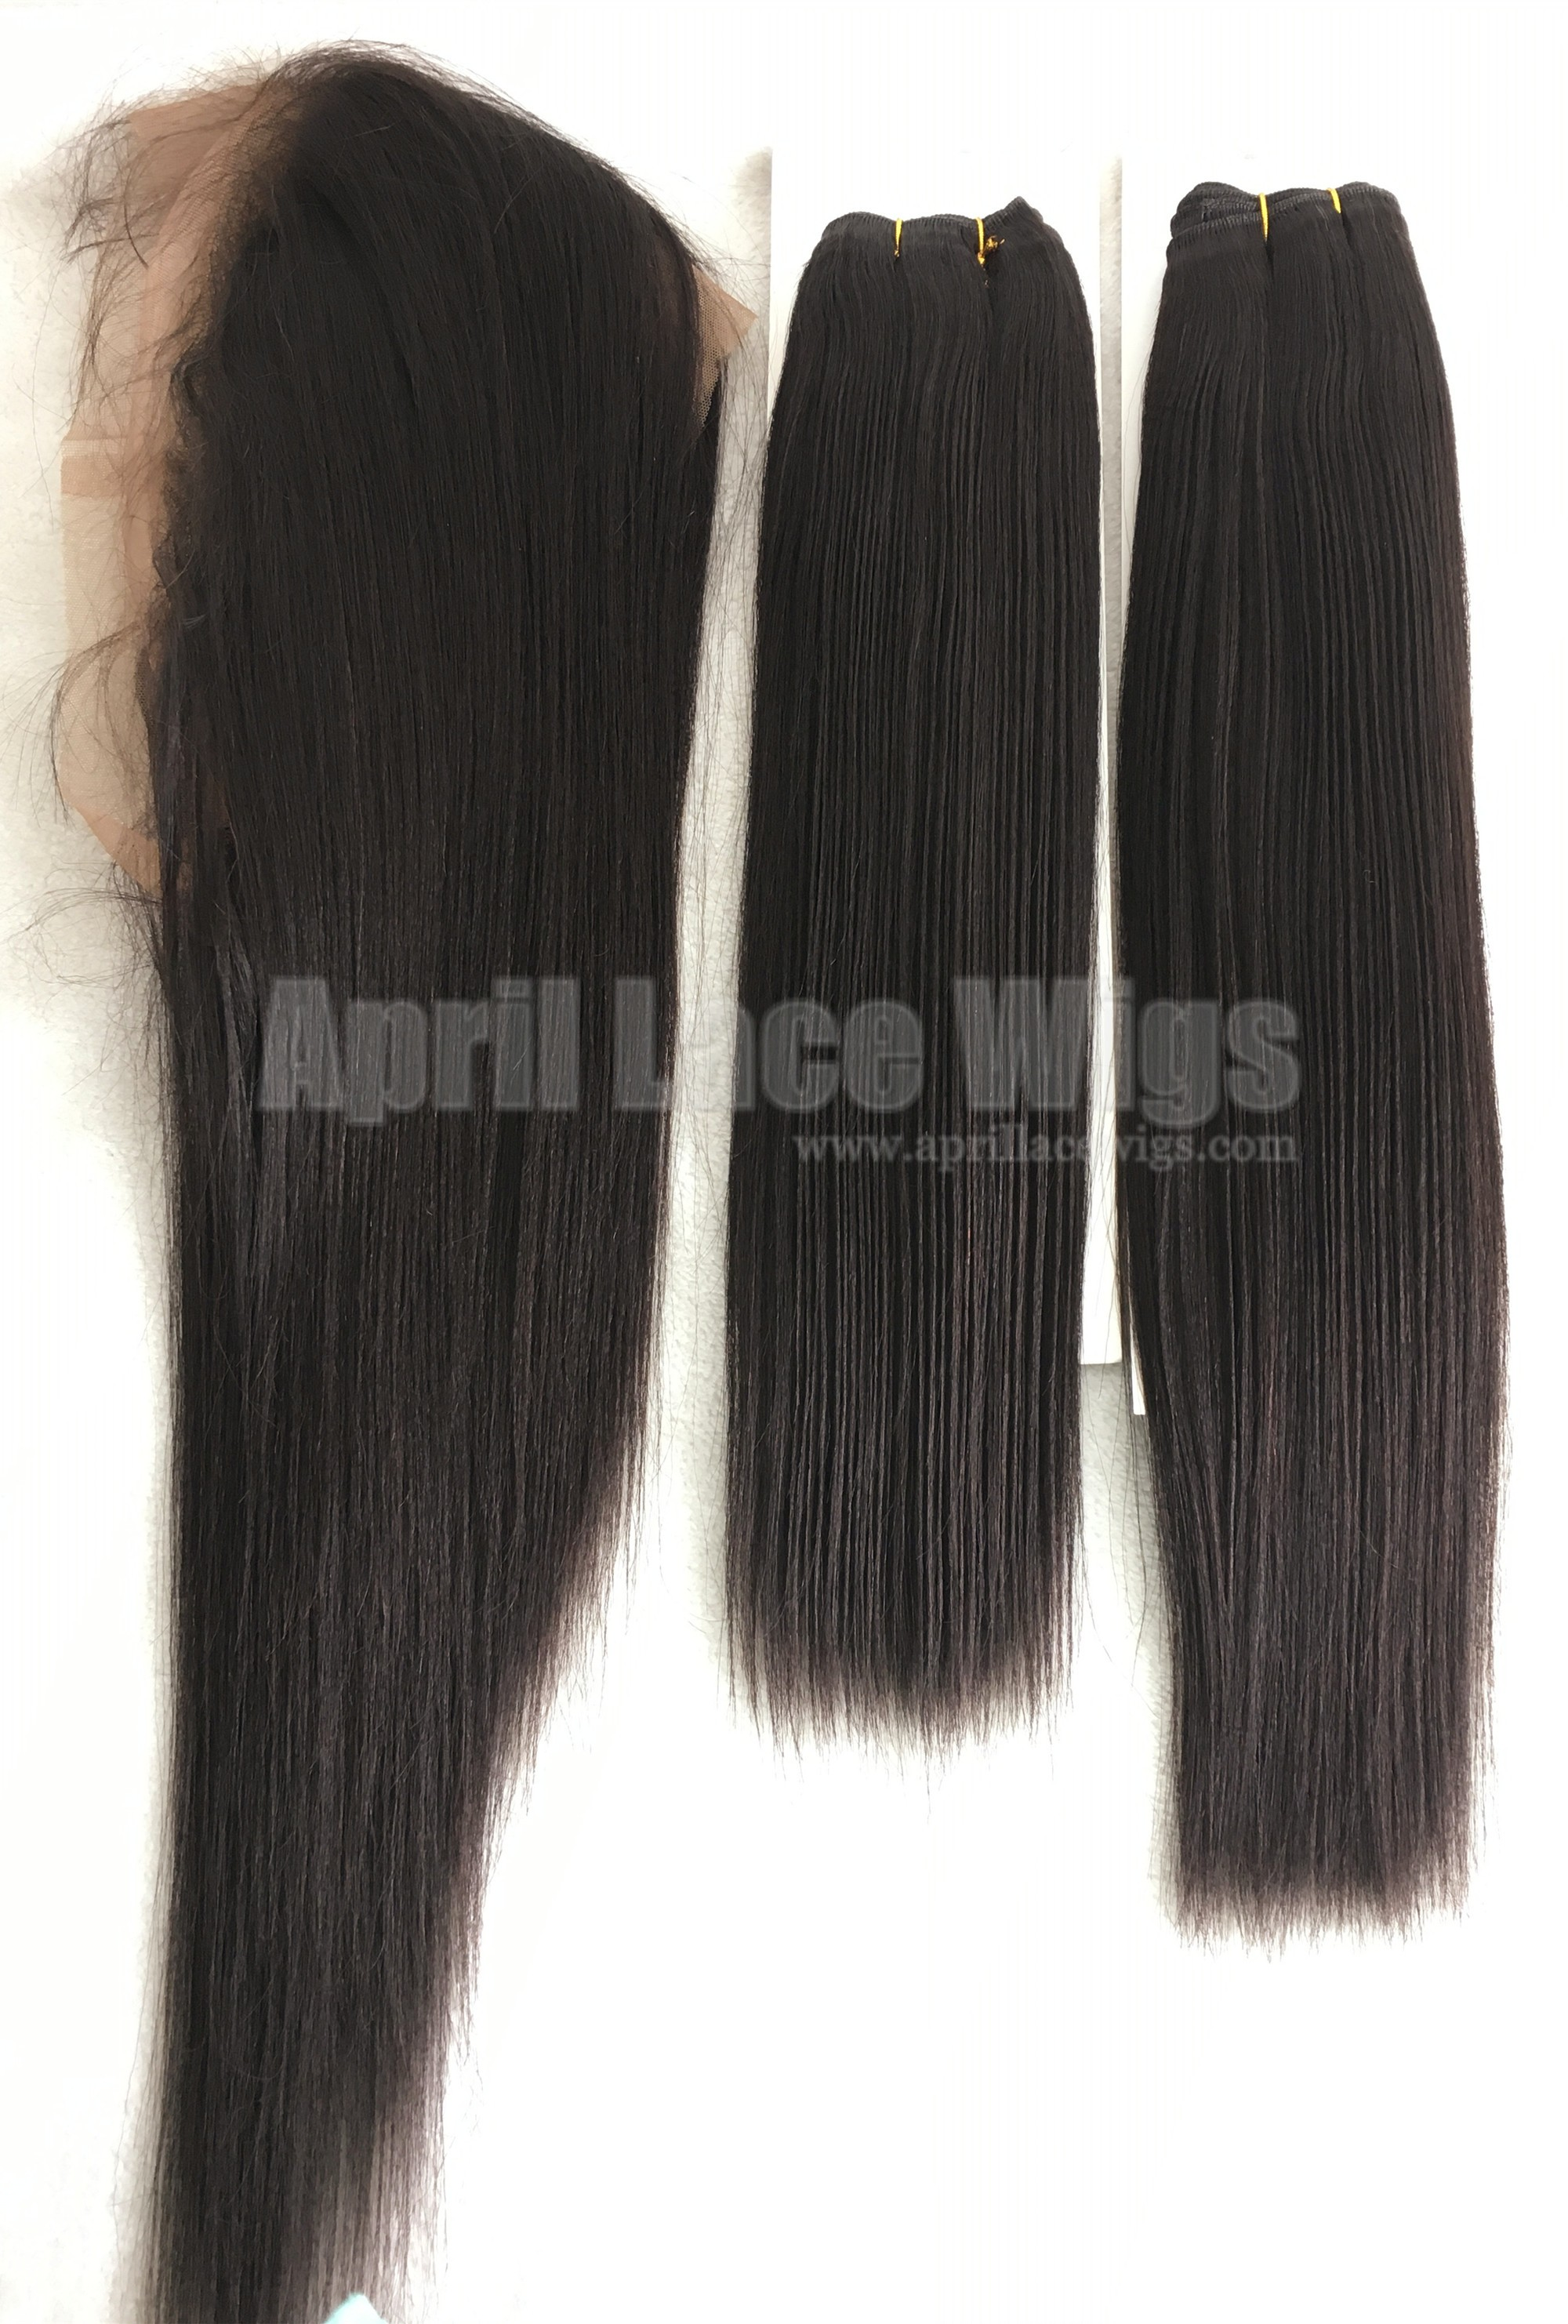 bundles deal for light yaki 360 frontal and wefts